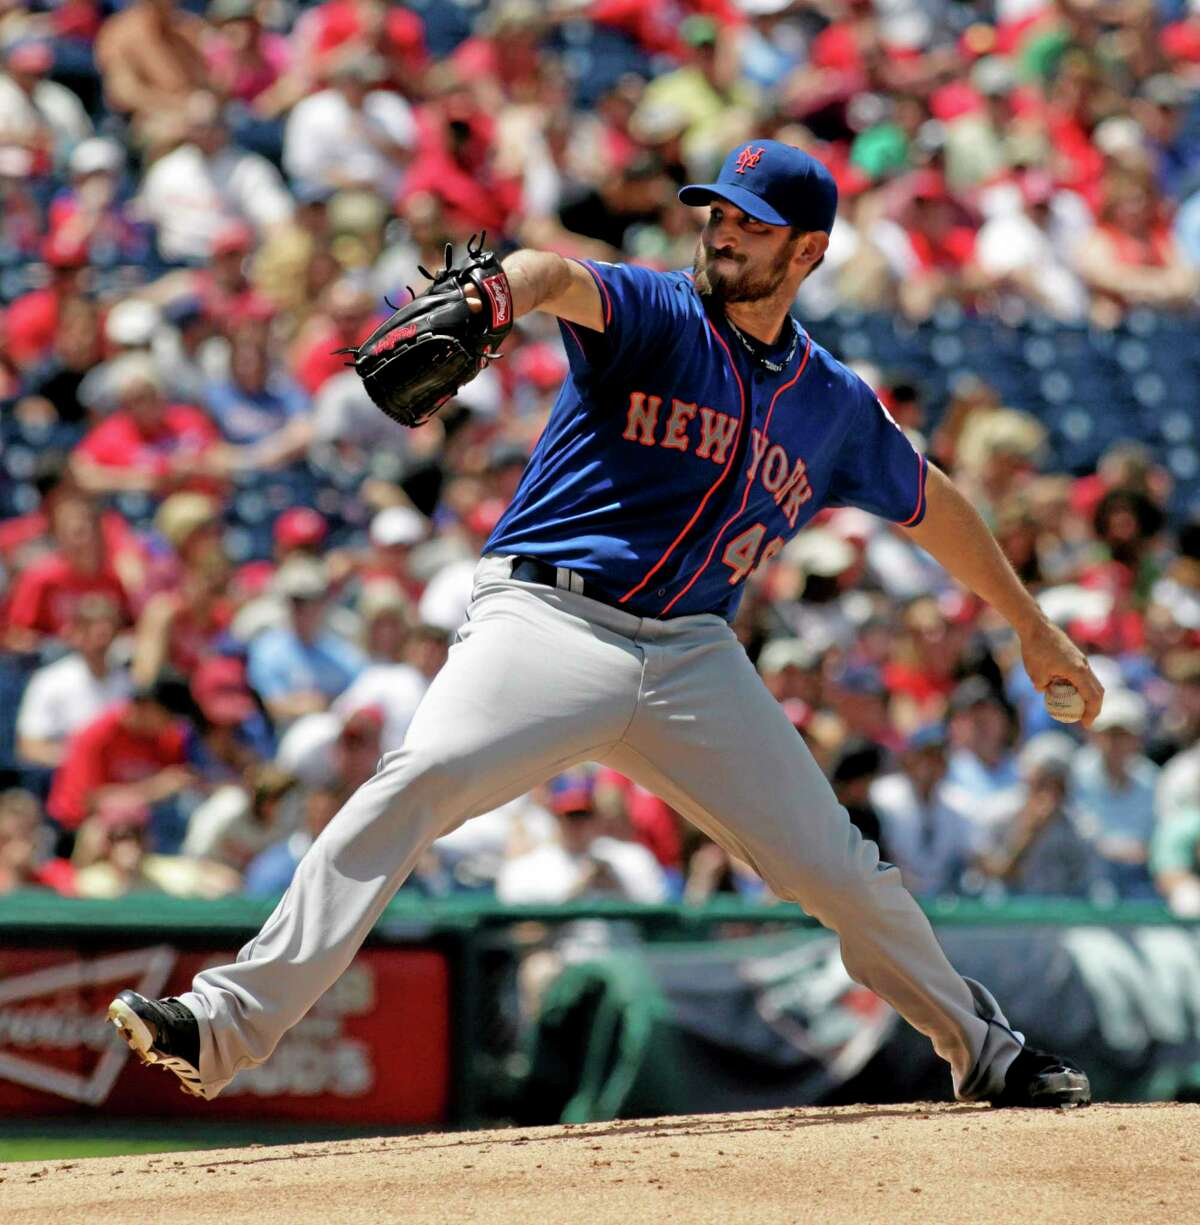 Mets starting pitcher Jonathon Niese has battled injuries in his career, but he has also put up consistently strong numbers when he is able to take the mound.